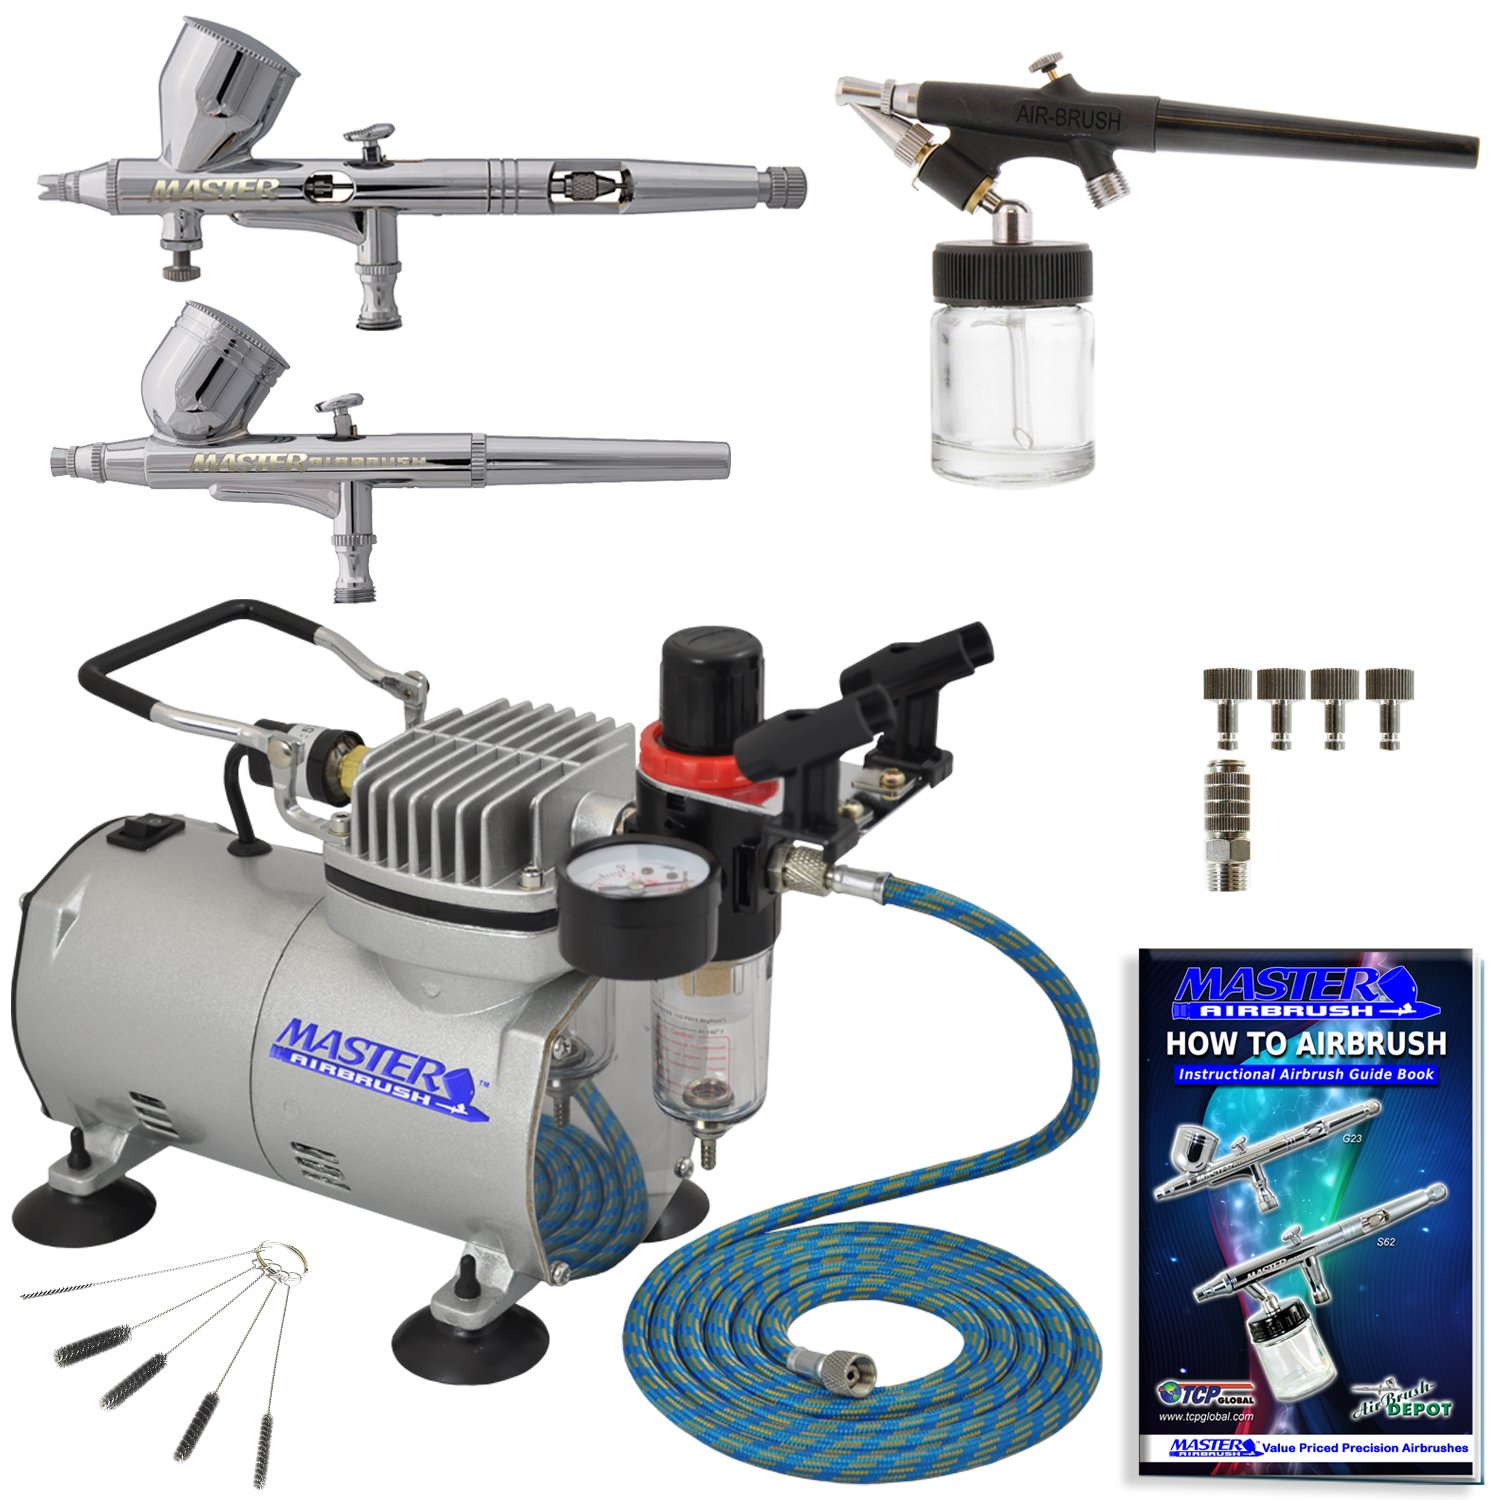 Professional Master Airbrush Fine Detail Control Airbrushing System with 3 Ma...